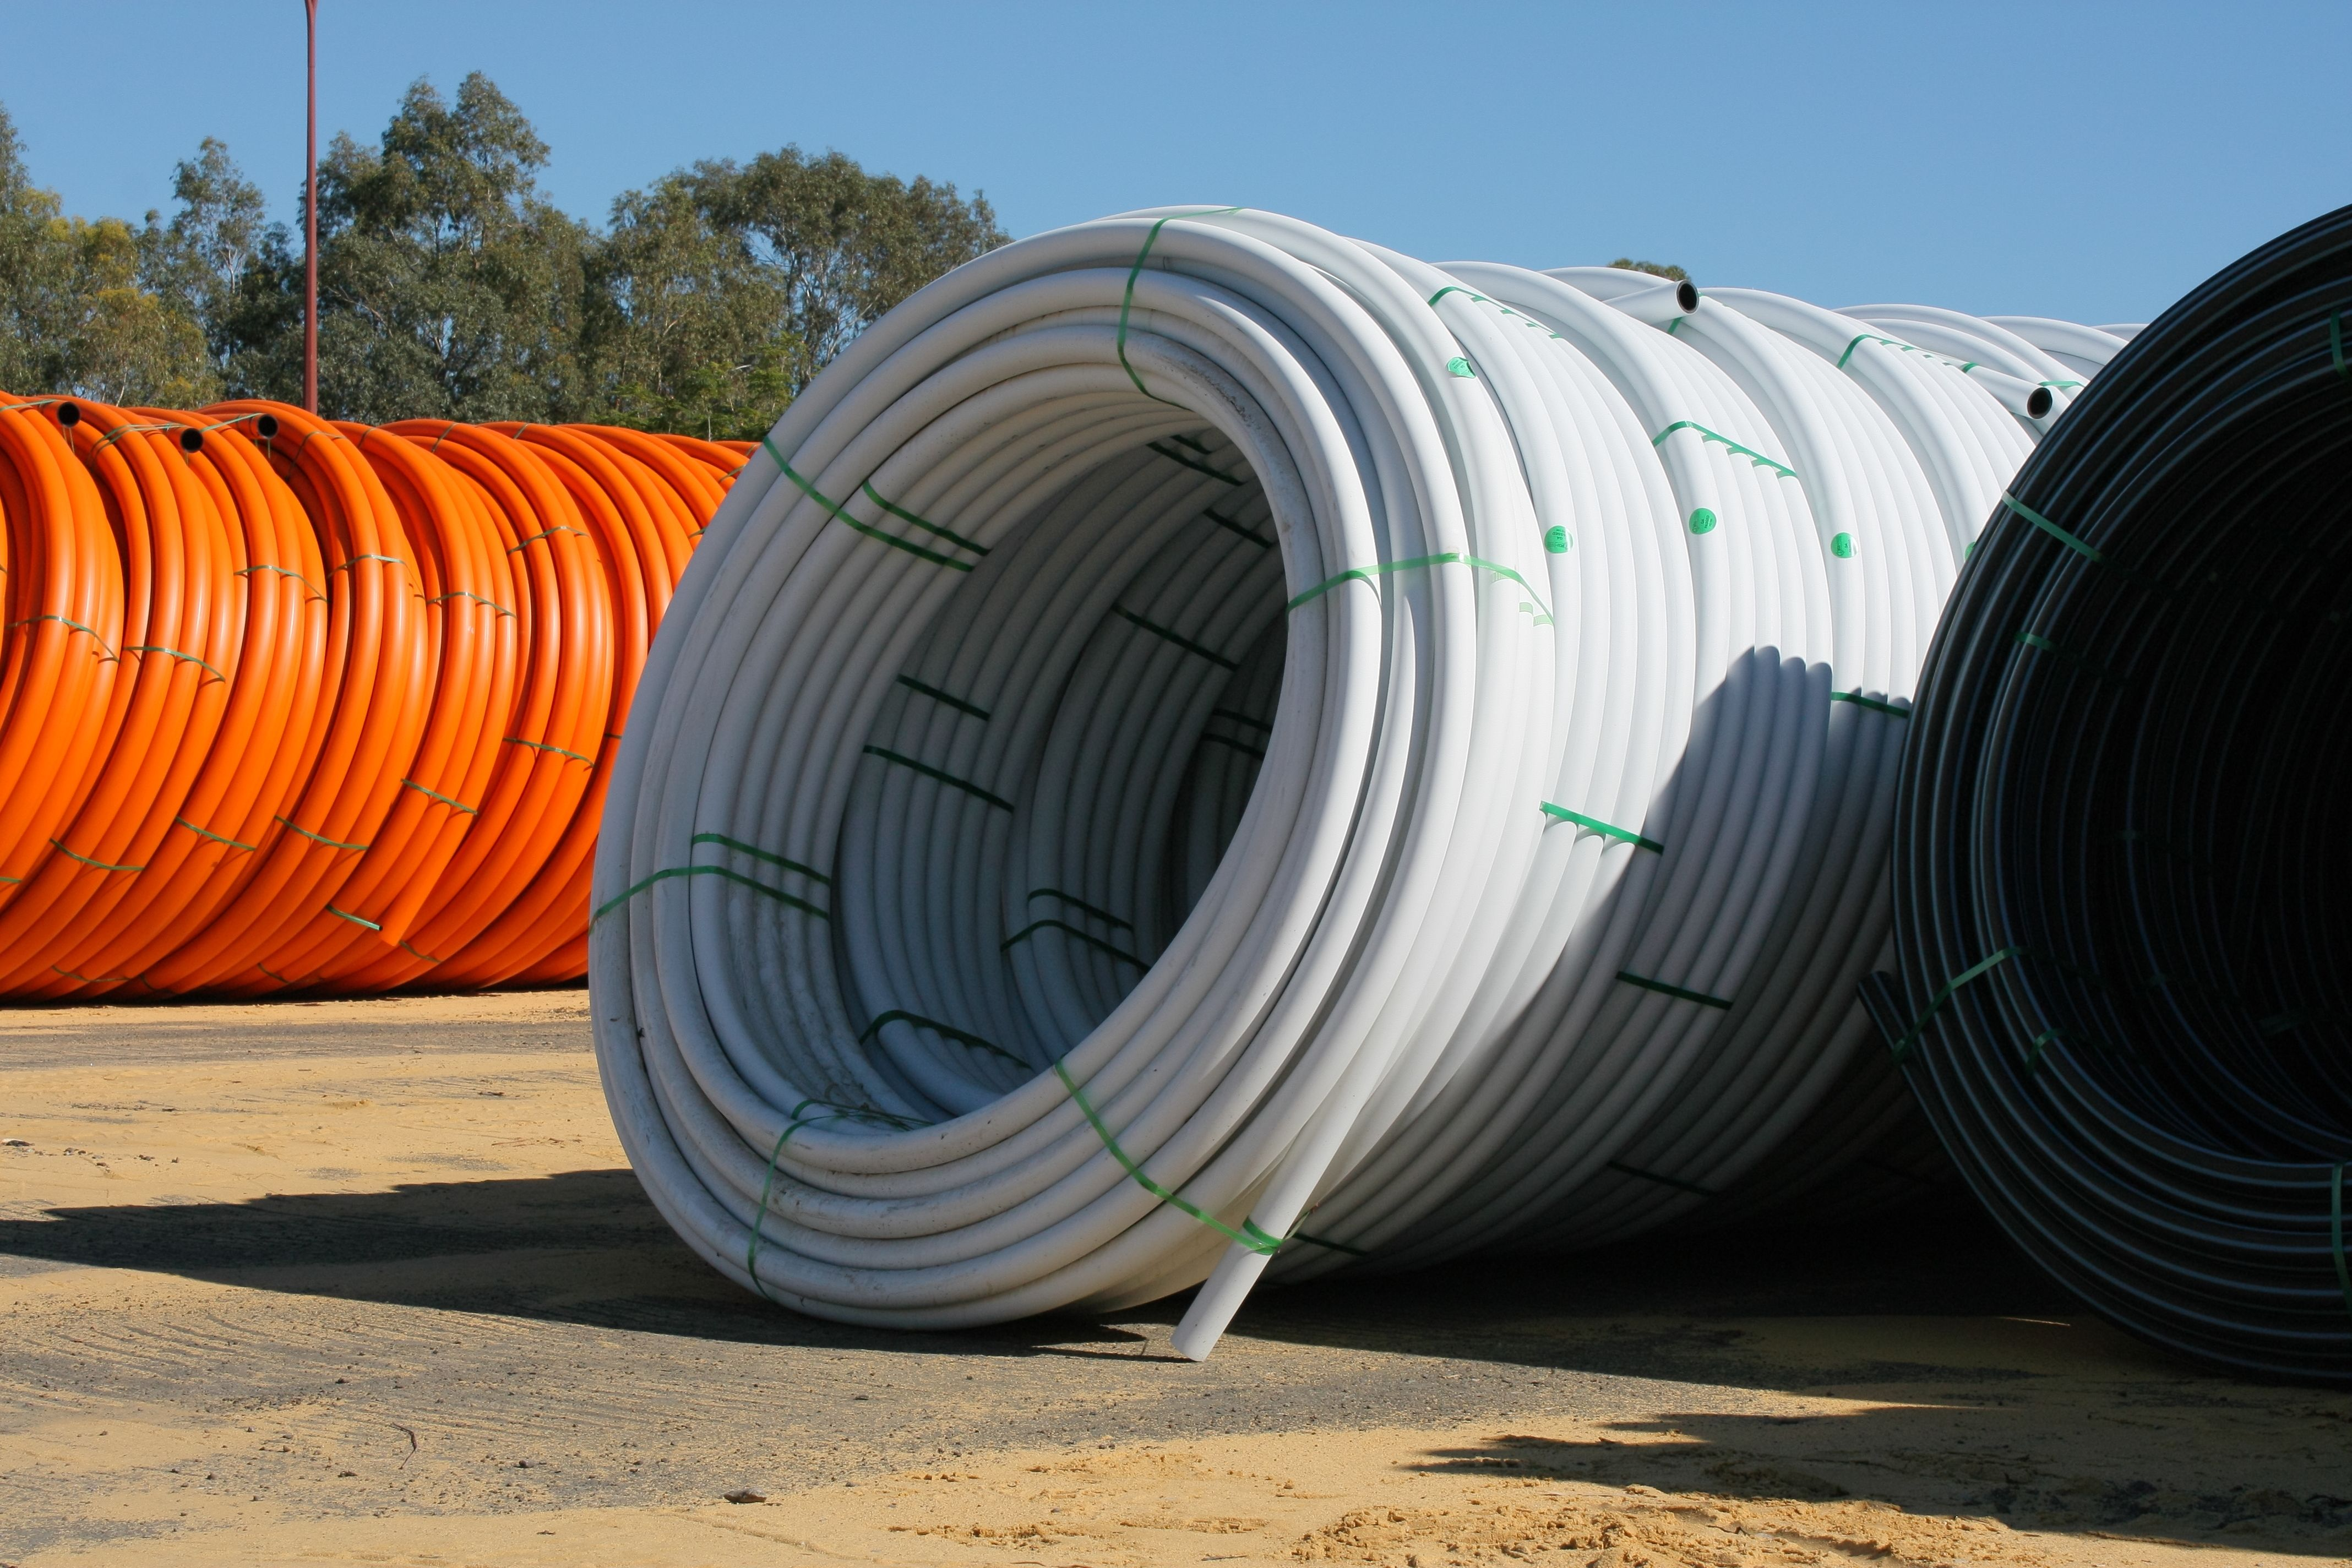 Pin Em Photos Of Hdpe Pipe And Fittings